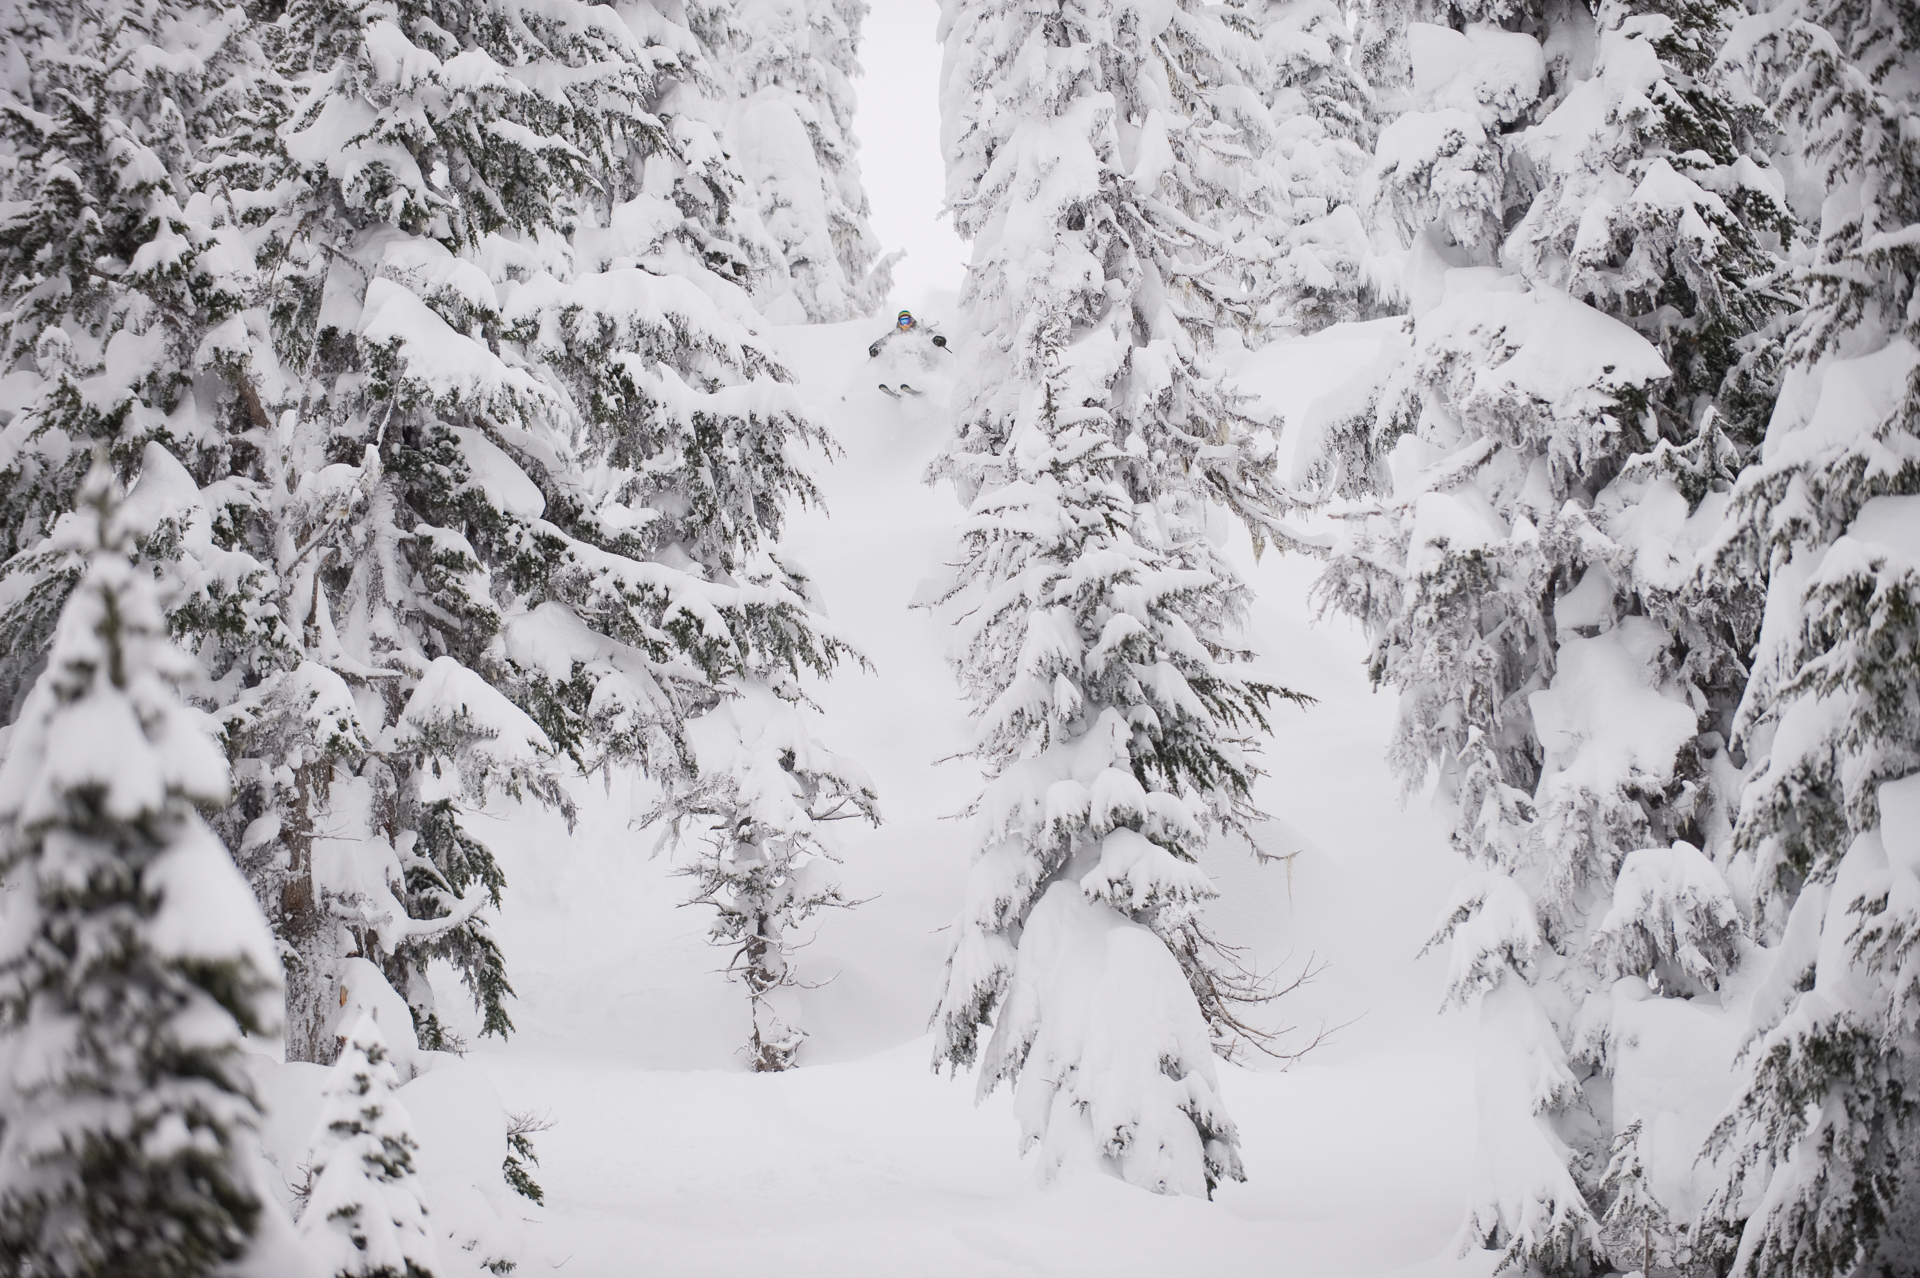 PHOTO: Mark Abma at Mustang Powder Cats, BC, by Scott Markewitz